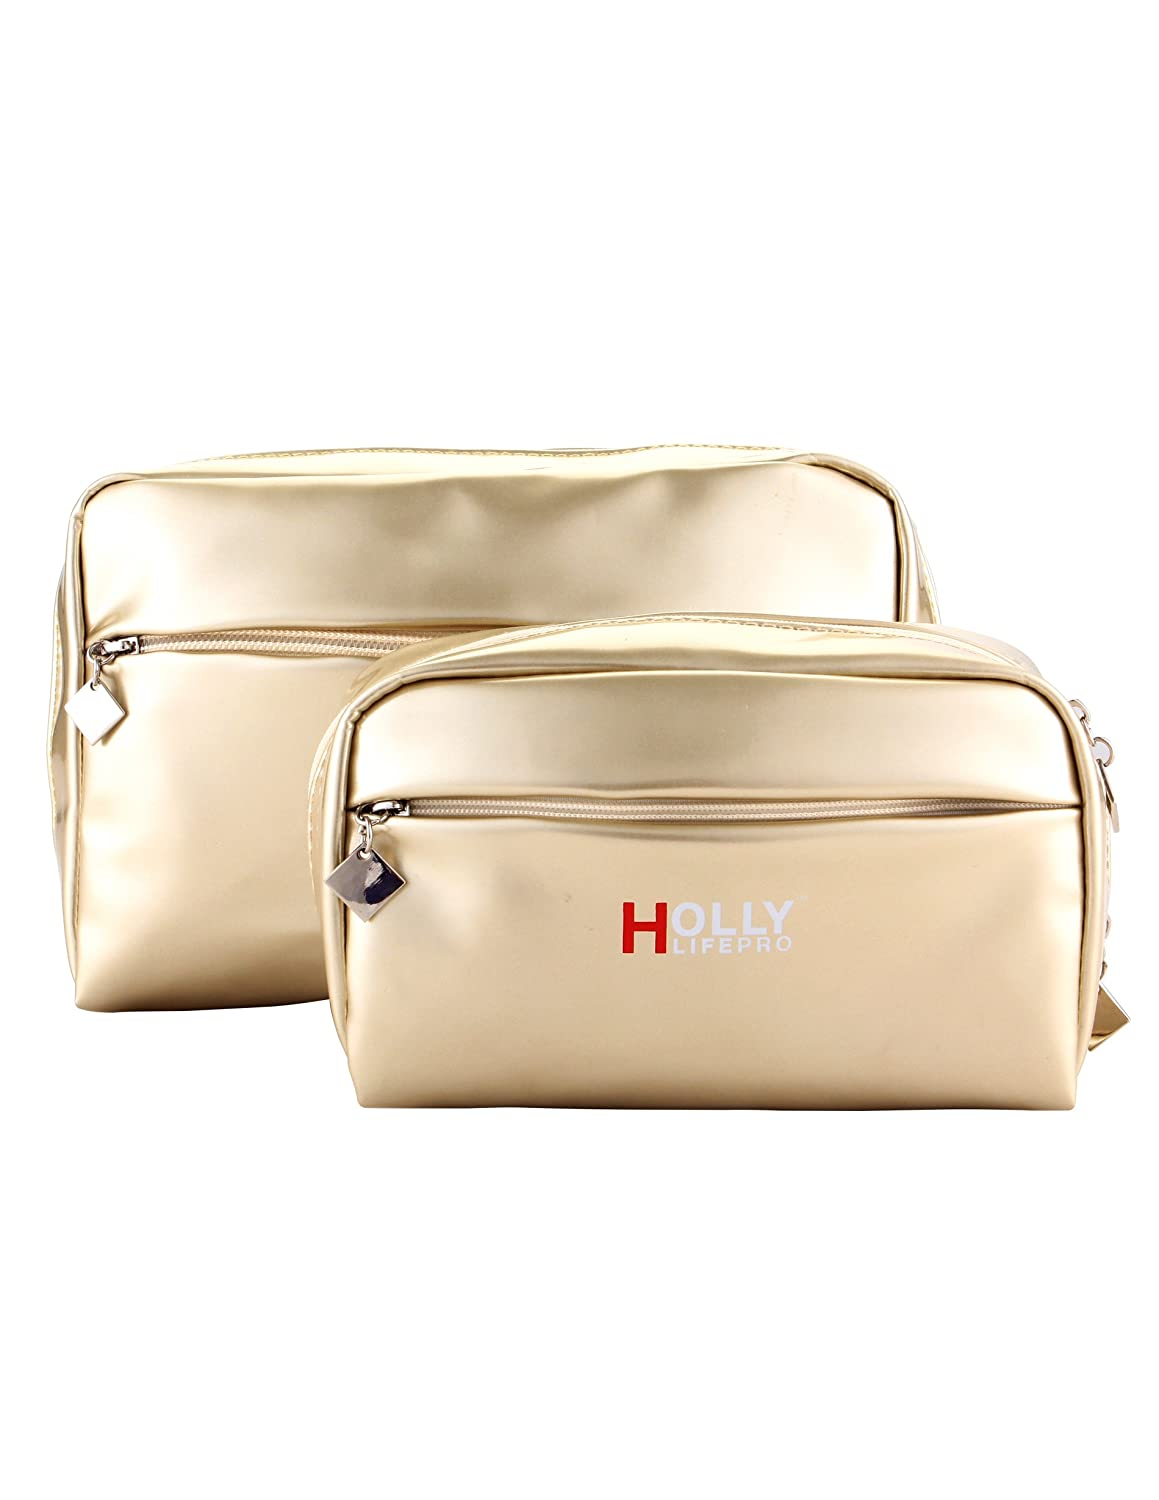 Holly LifePro 2pcs of set Elegant PU Leather Handy Cosmetic Pouch Clutch Makeup Bag Travel Accessory Organizer toiletry bag 119-2